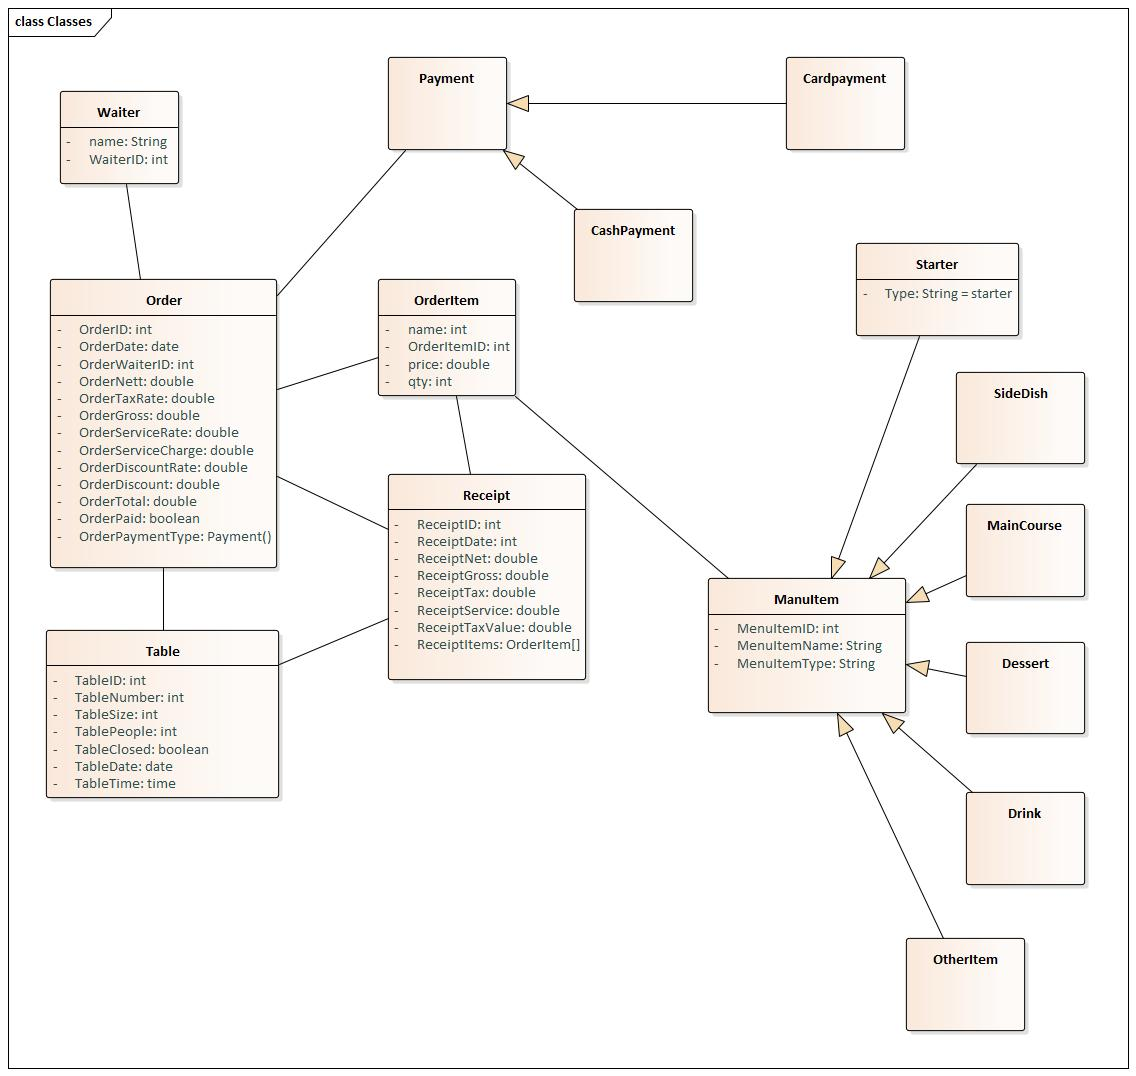 This is just a draft of UML class diagram for restaurant order taking app.